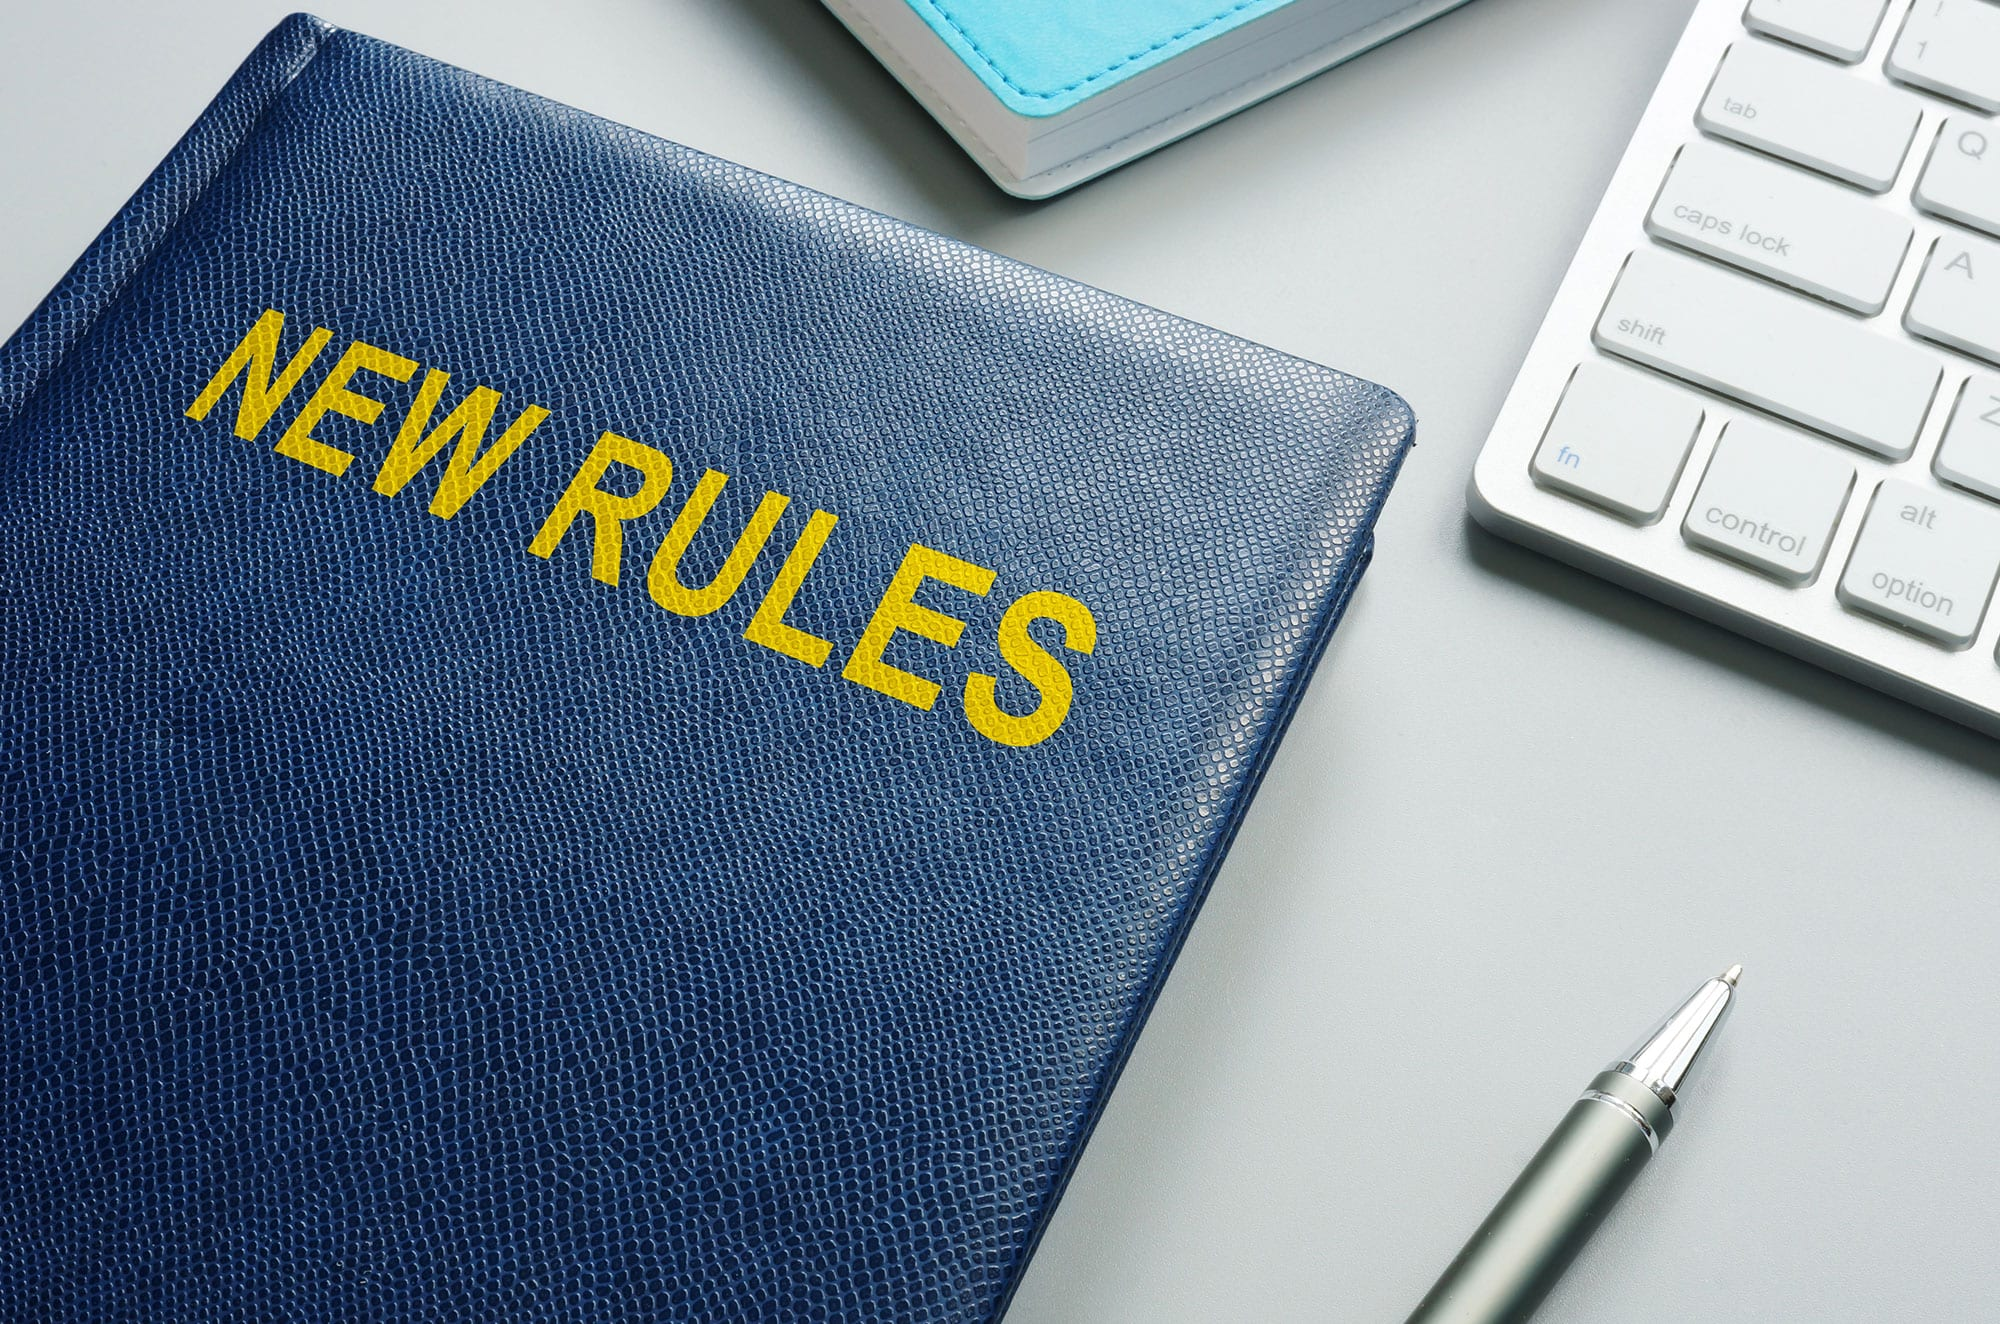 New rules and regulations